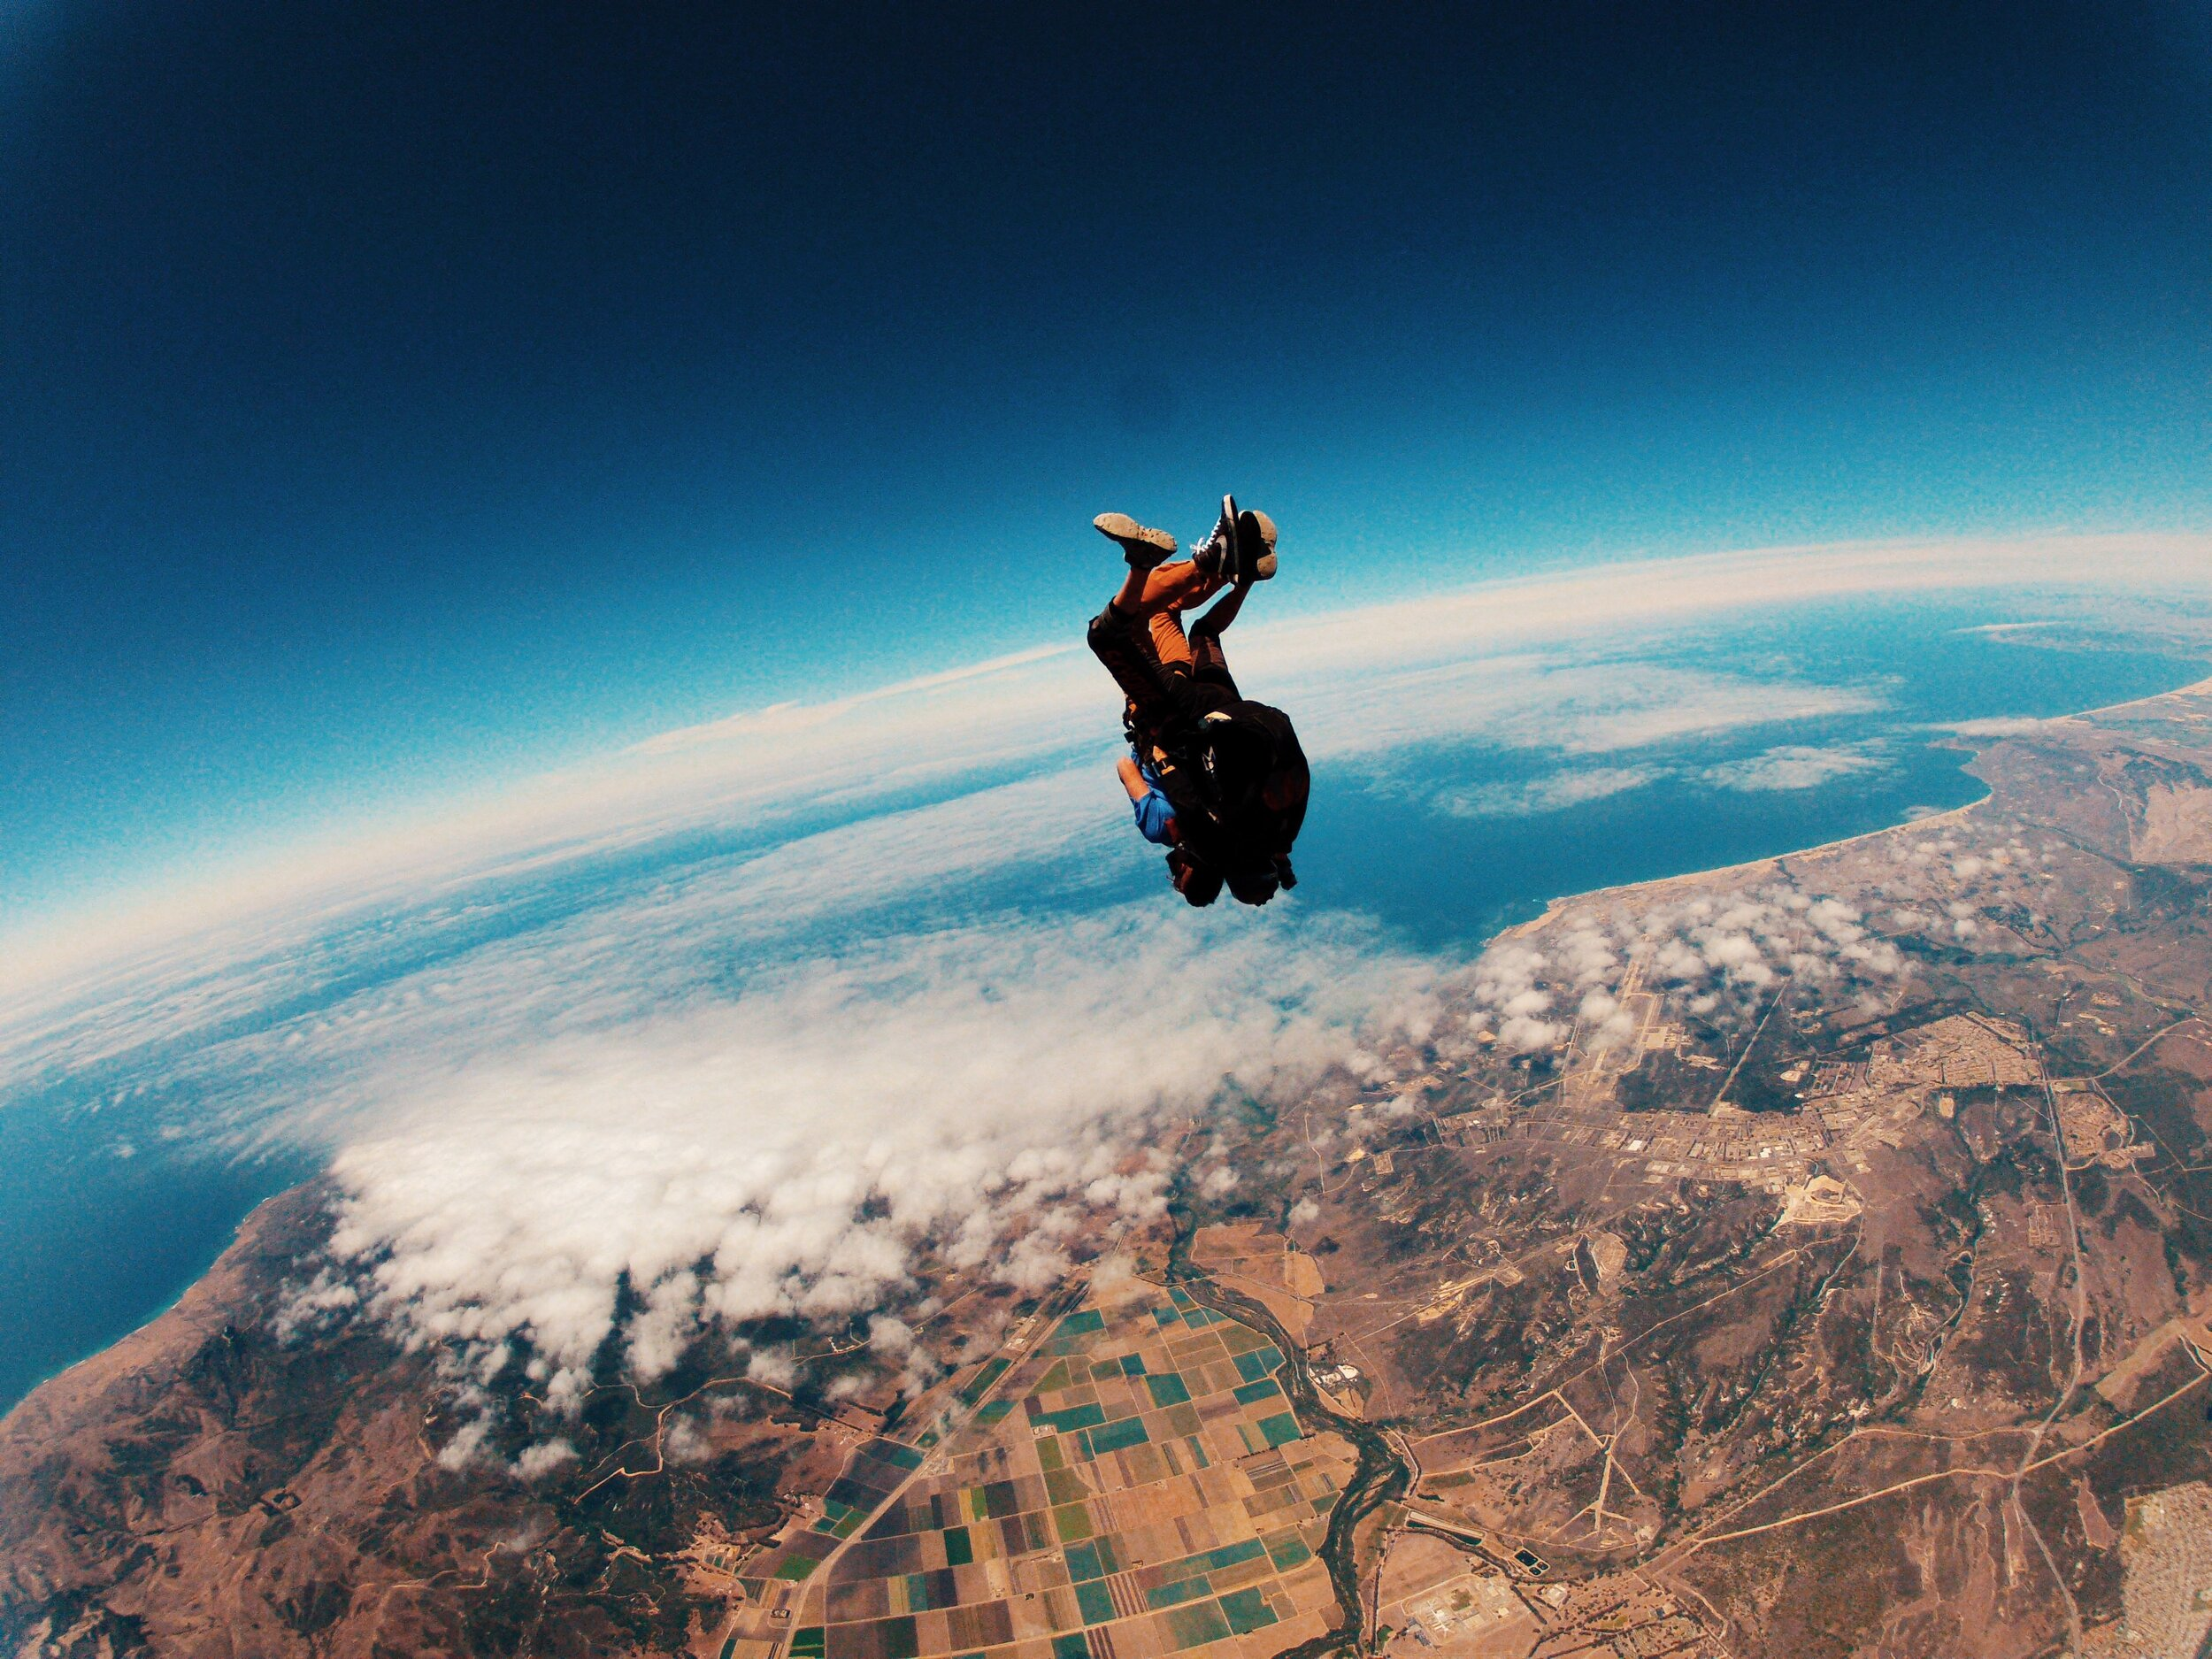 How To Turn Your Fear Of Failure Into Fuel For Fulfillment